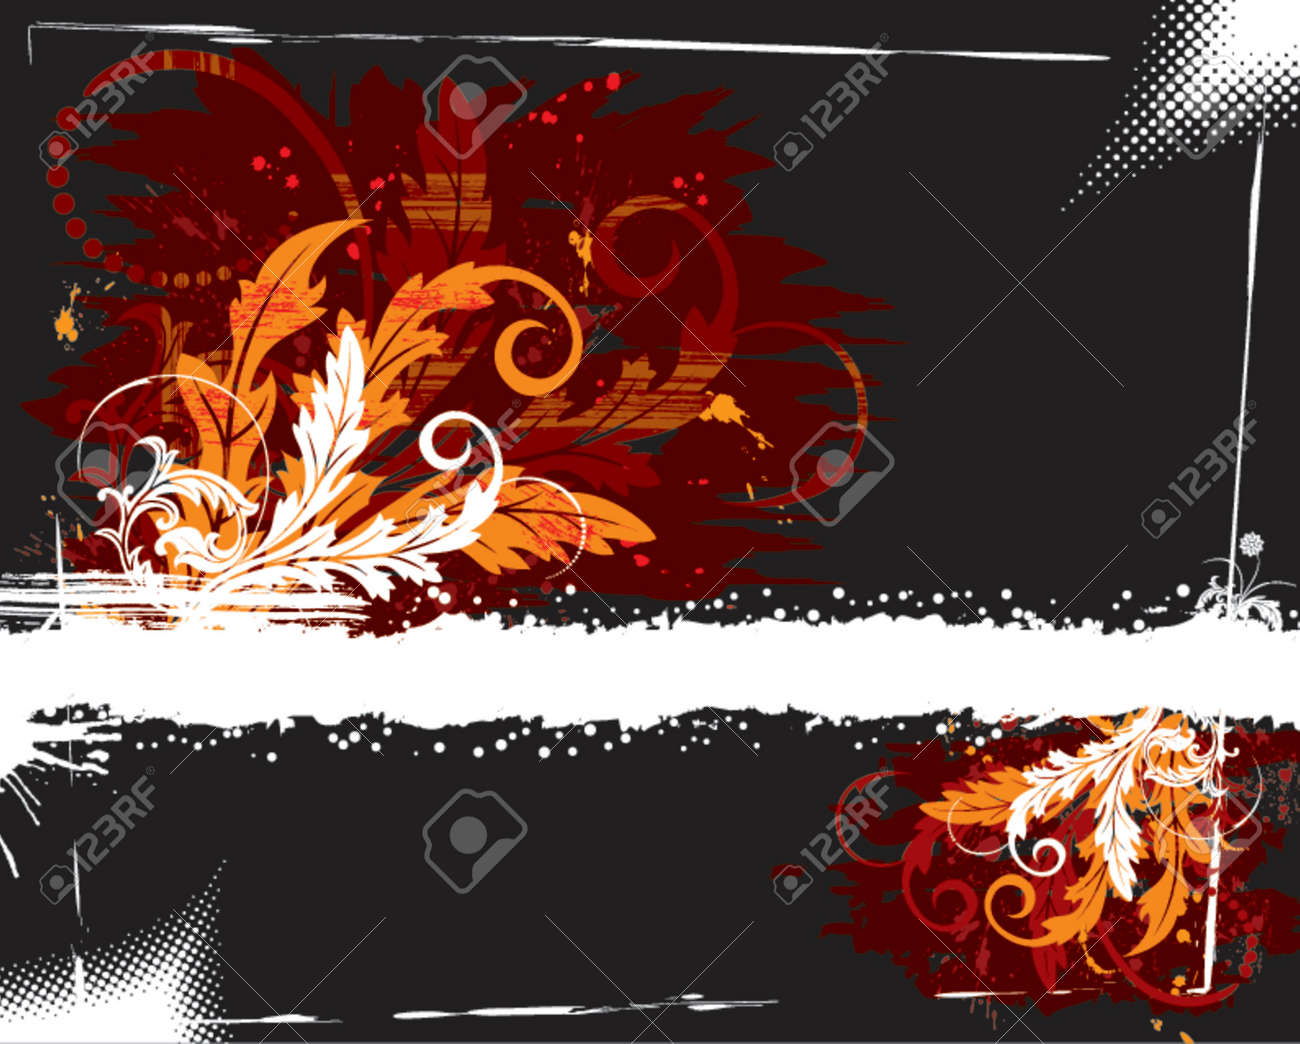 Grunge paint floral chaos, element for design, vector illustration Stock Vector - 826095